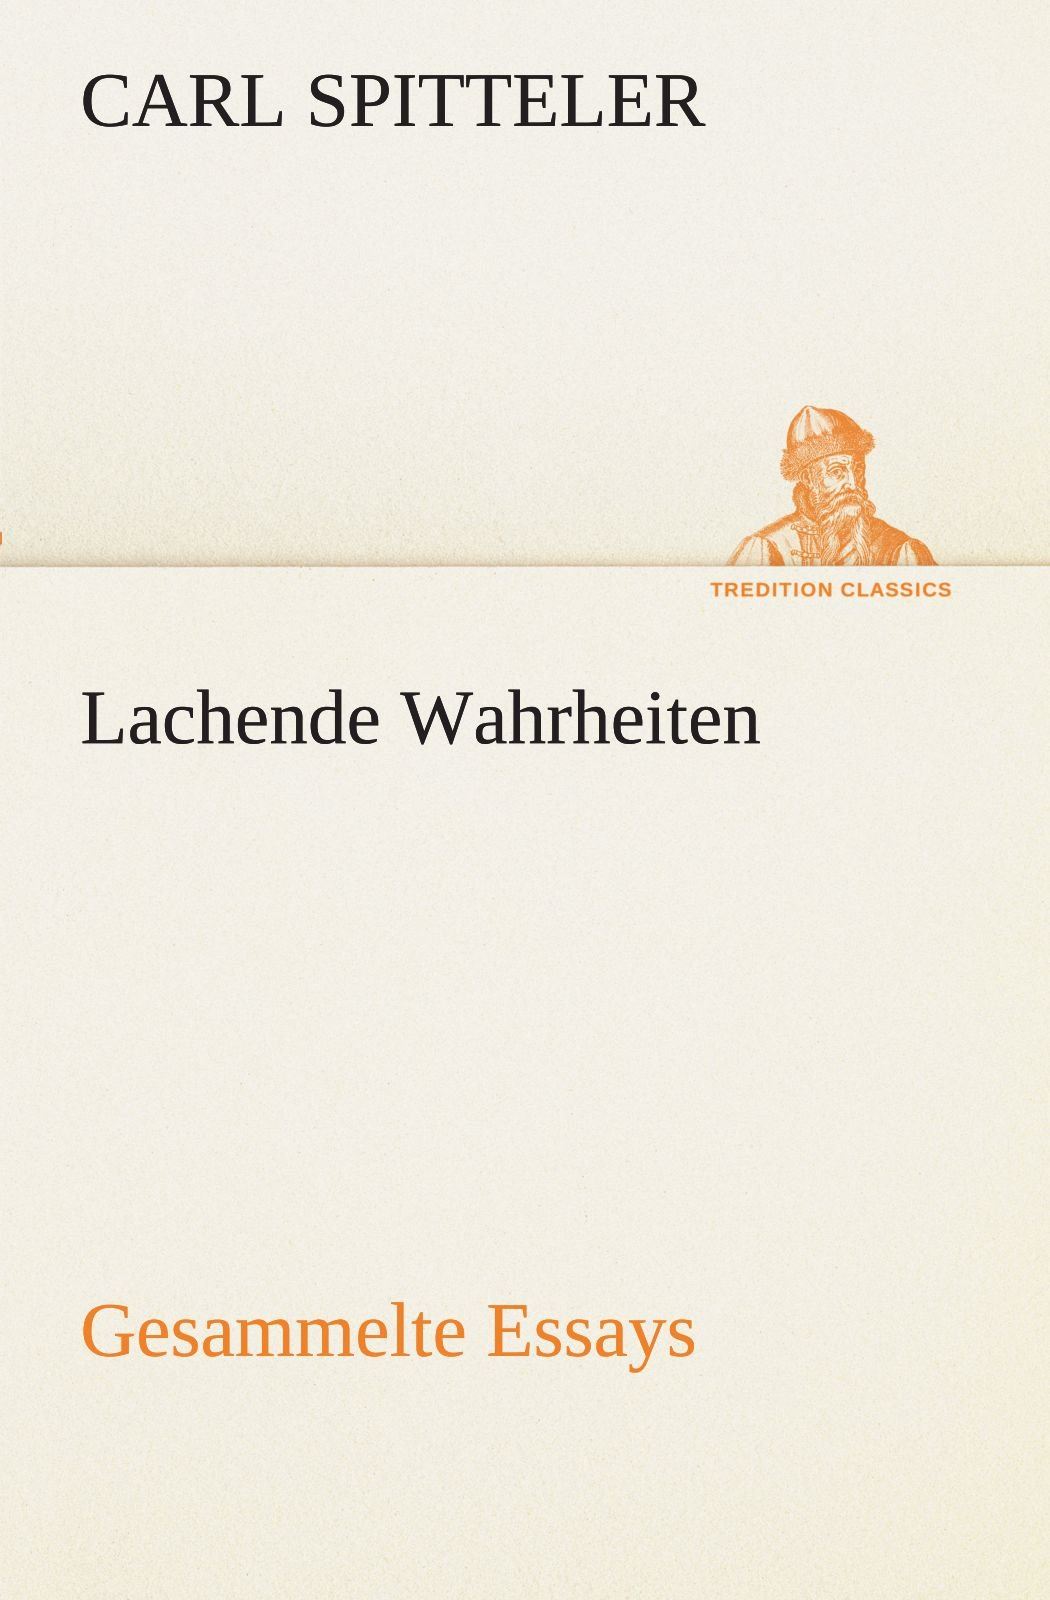 Download Lachende Wahrheiten: Gesammelte Essays (TREDITION CLASSICS) (German Edition) Text fb2 ebook